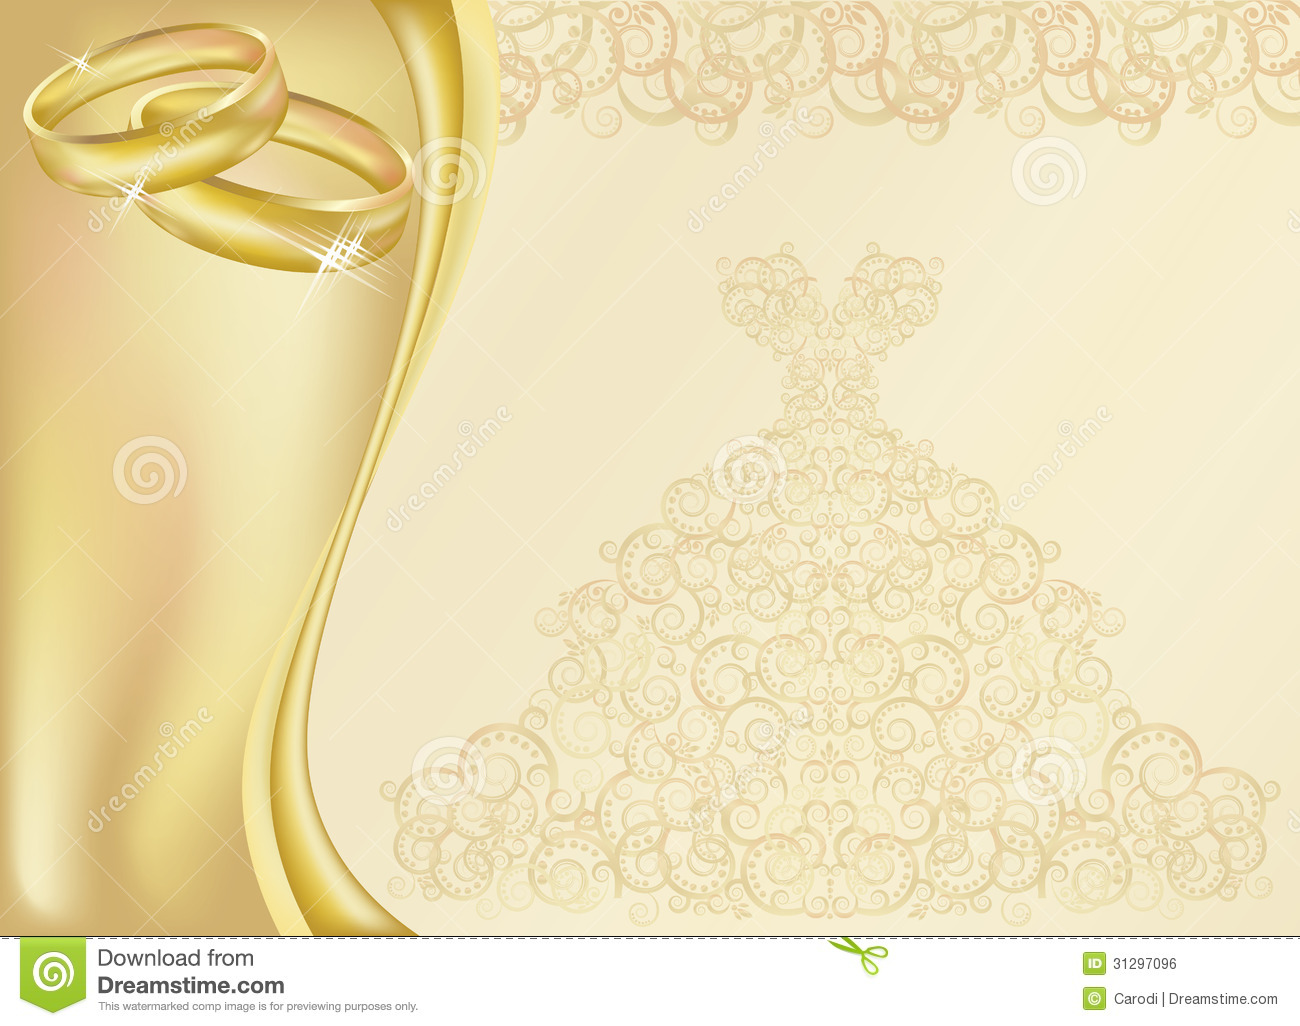 wedding invitation card two golden rings 31297096